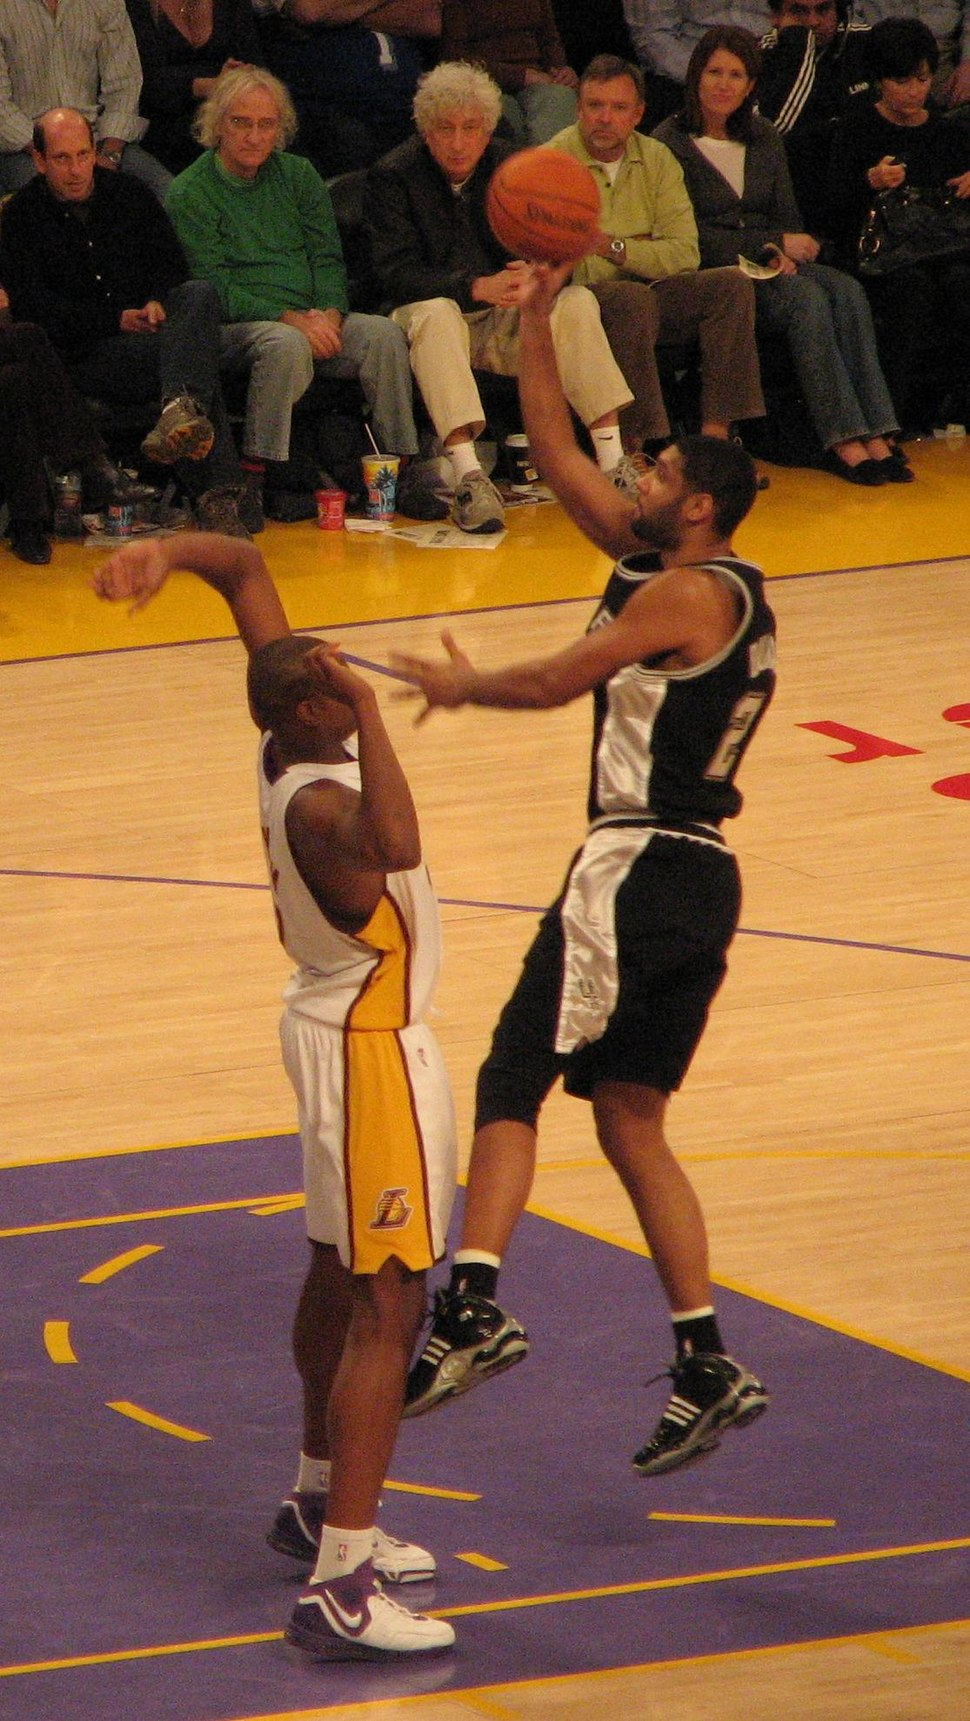 TD shooting over Andrew Bynum